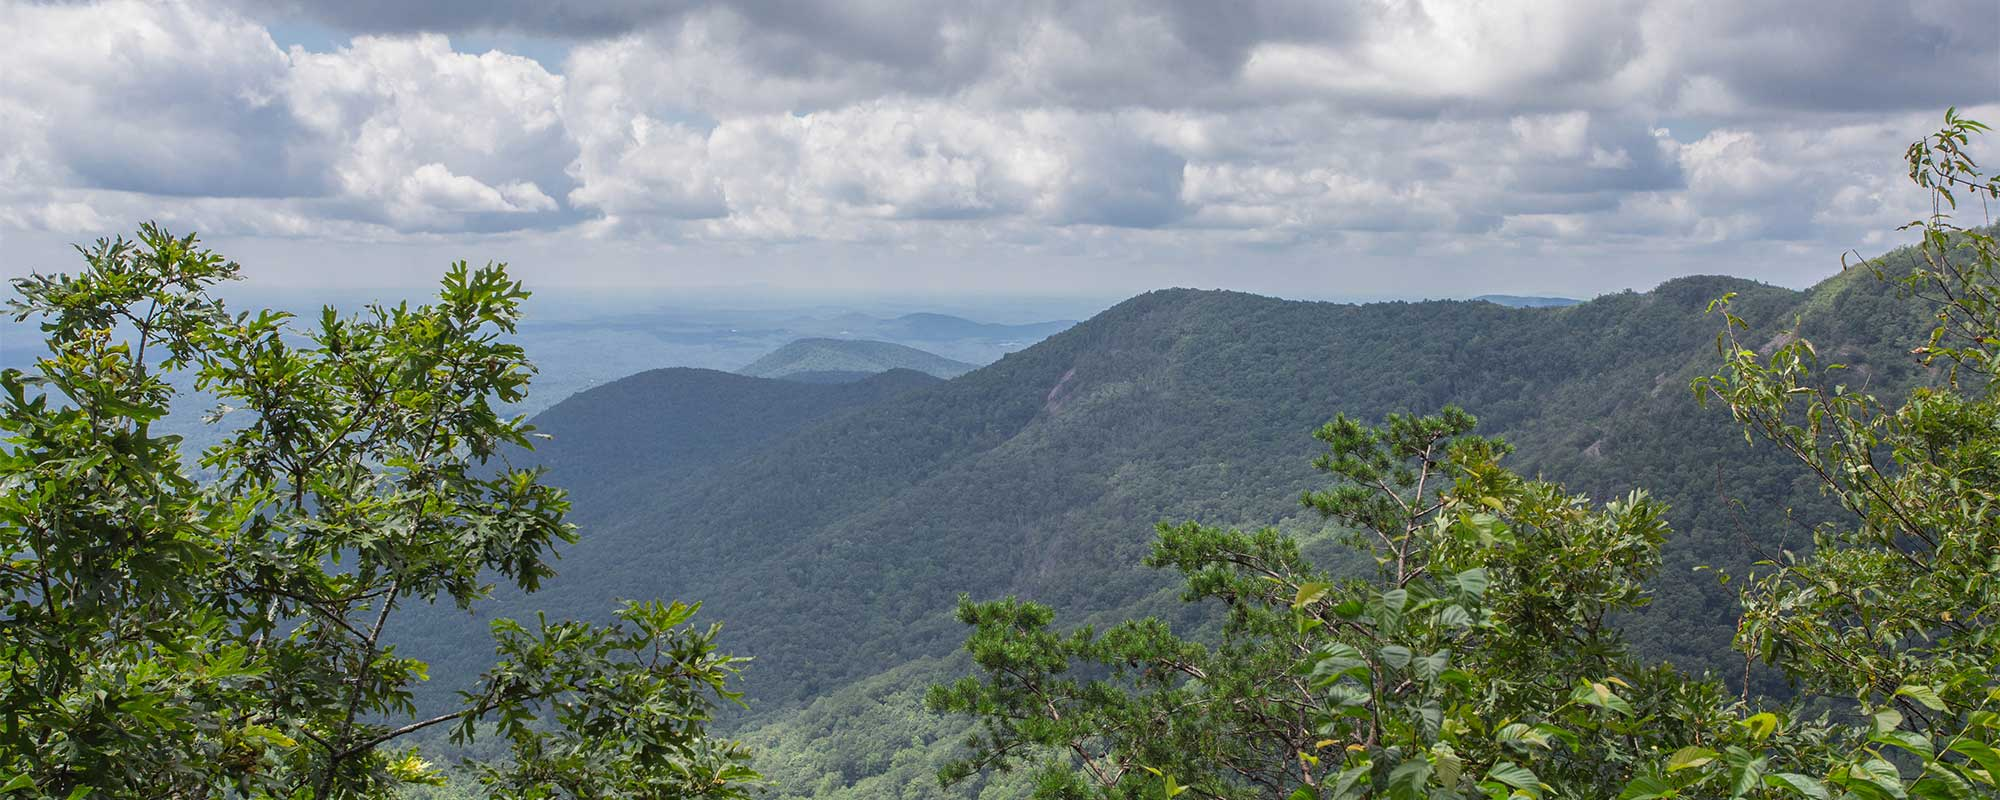 Cowrock Mountain via Hogpen Gap